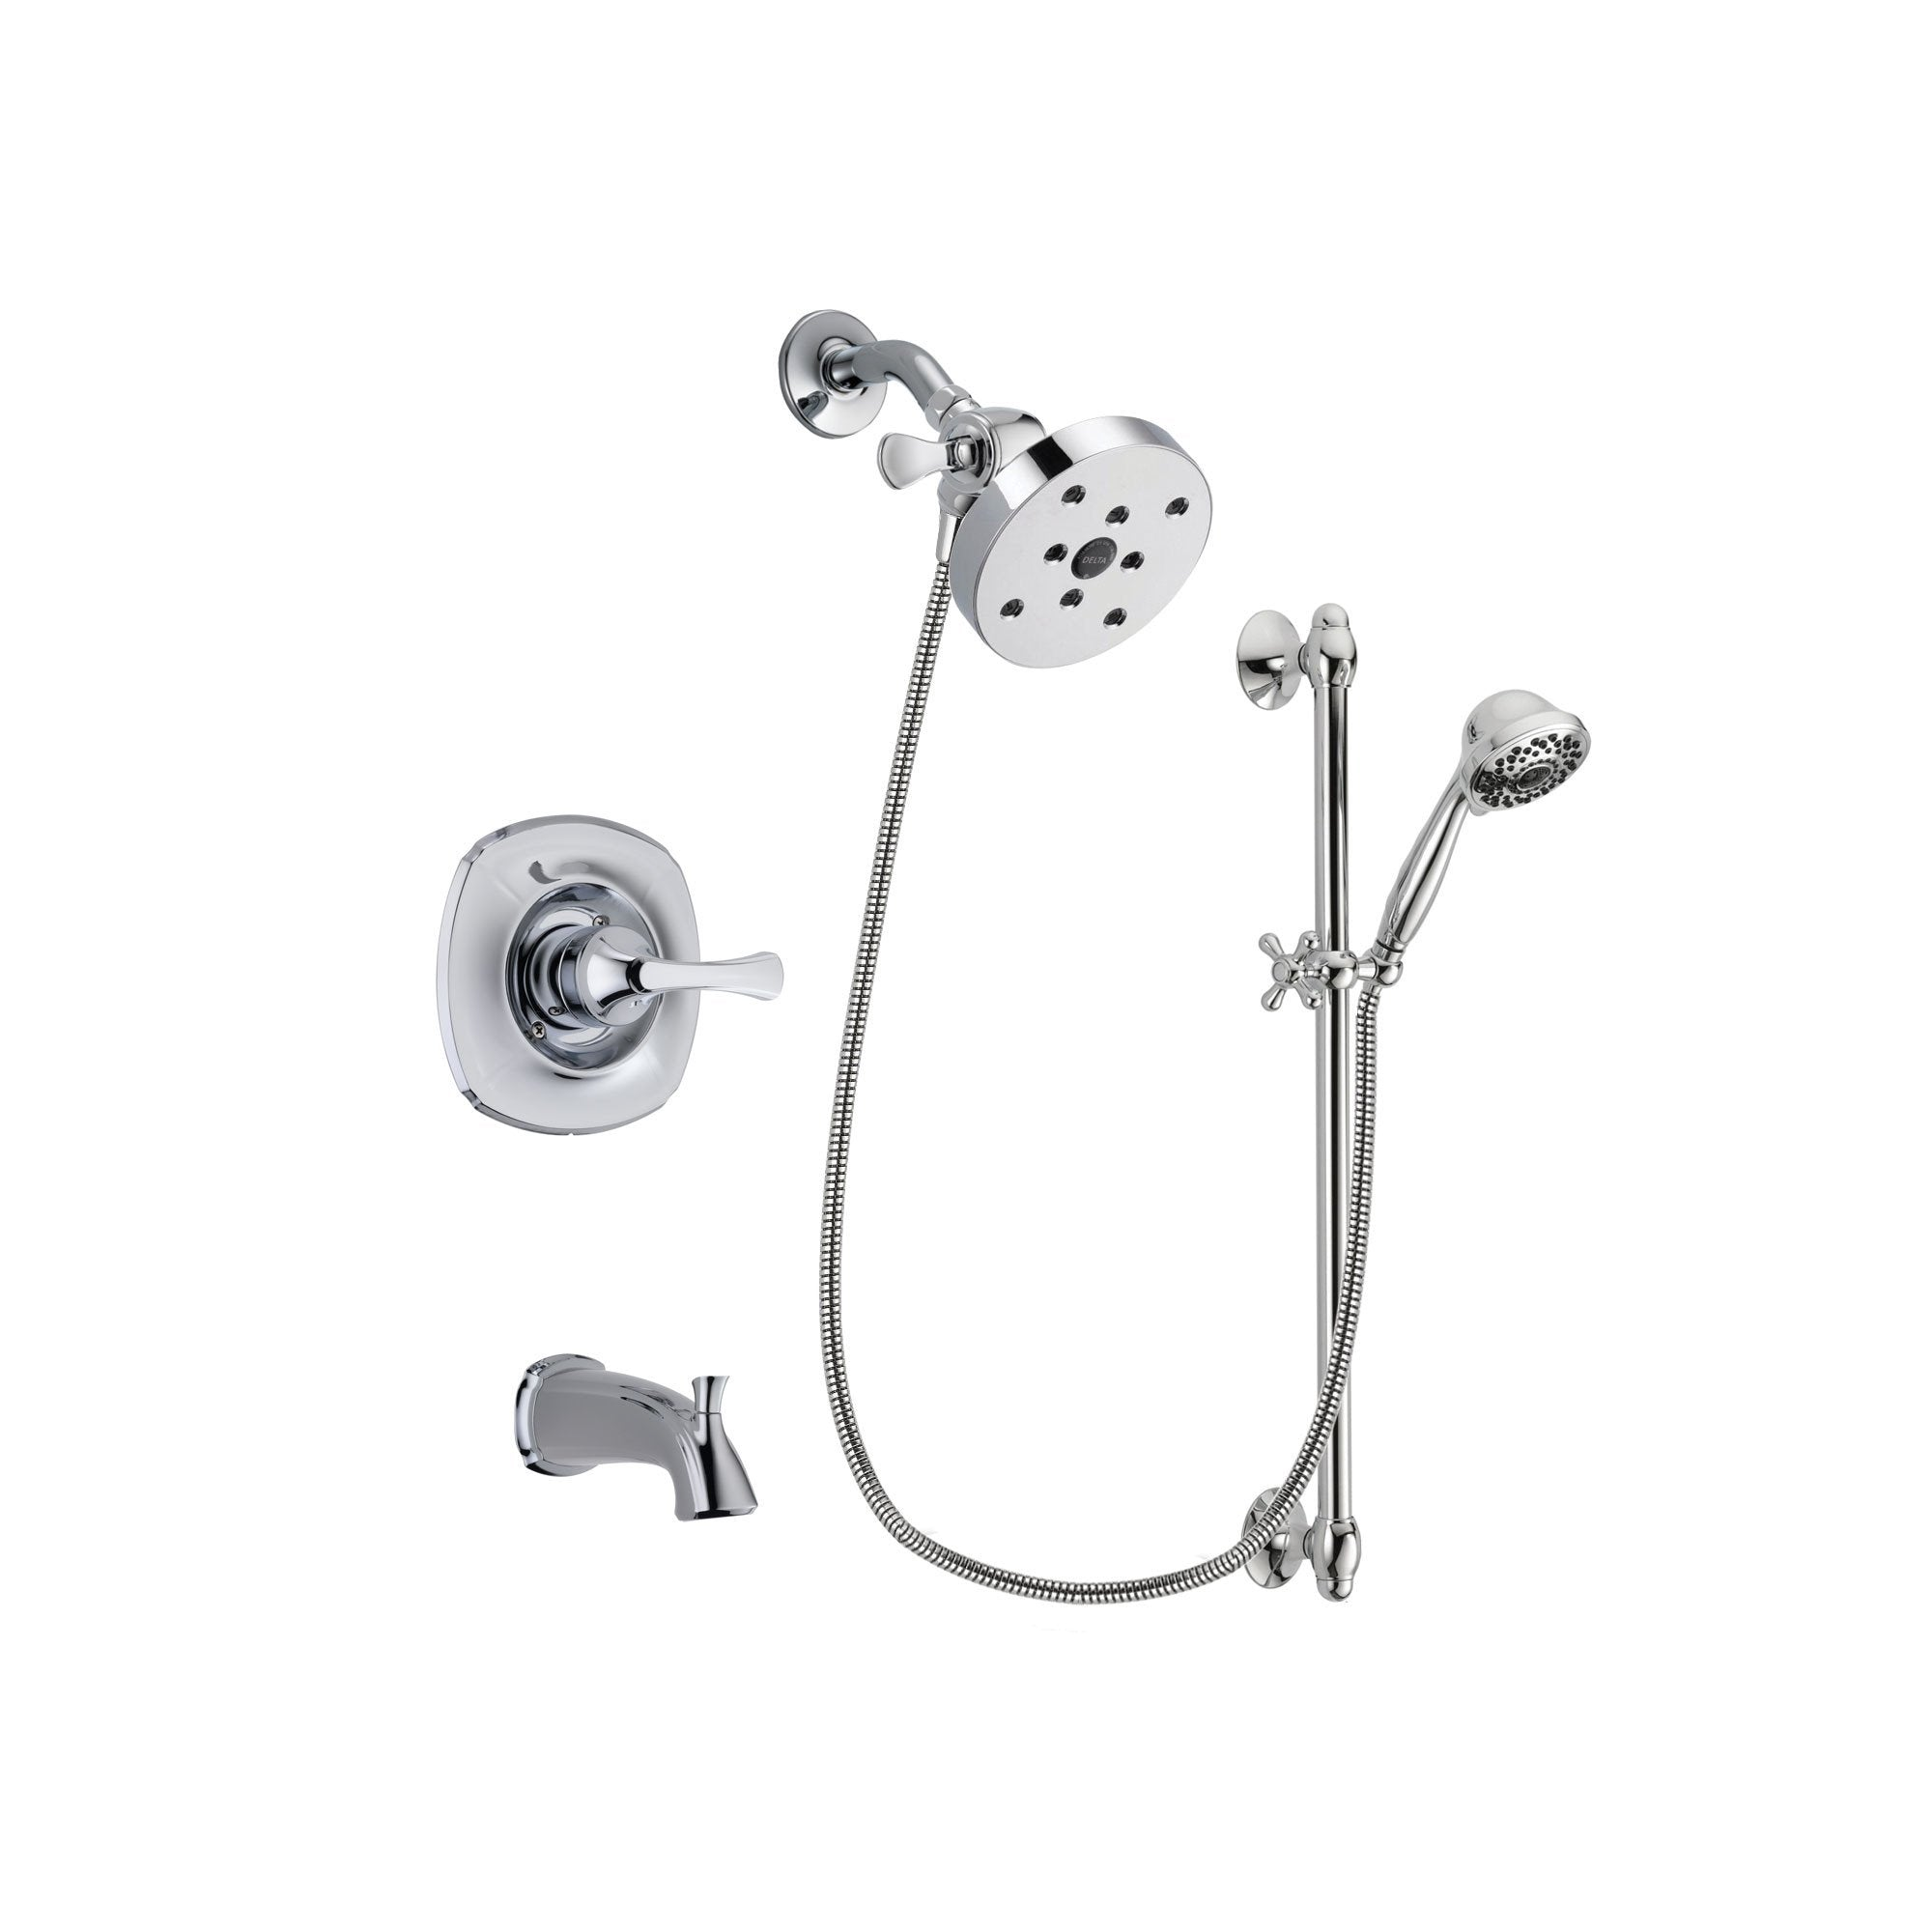 Easy Install Shower Systems: Luxury Custom Shower Systems for Less ...